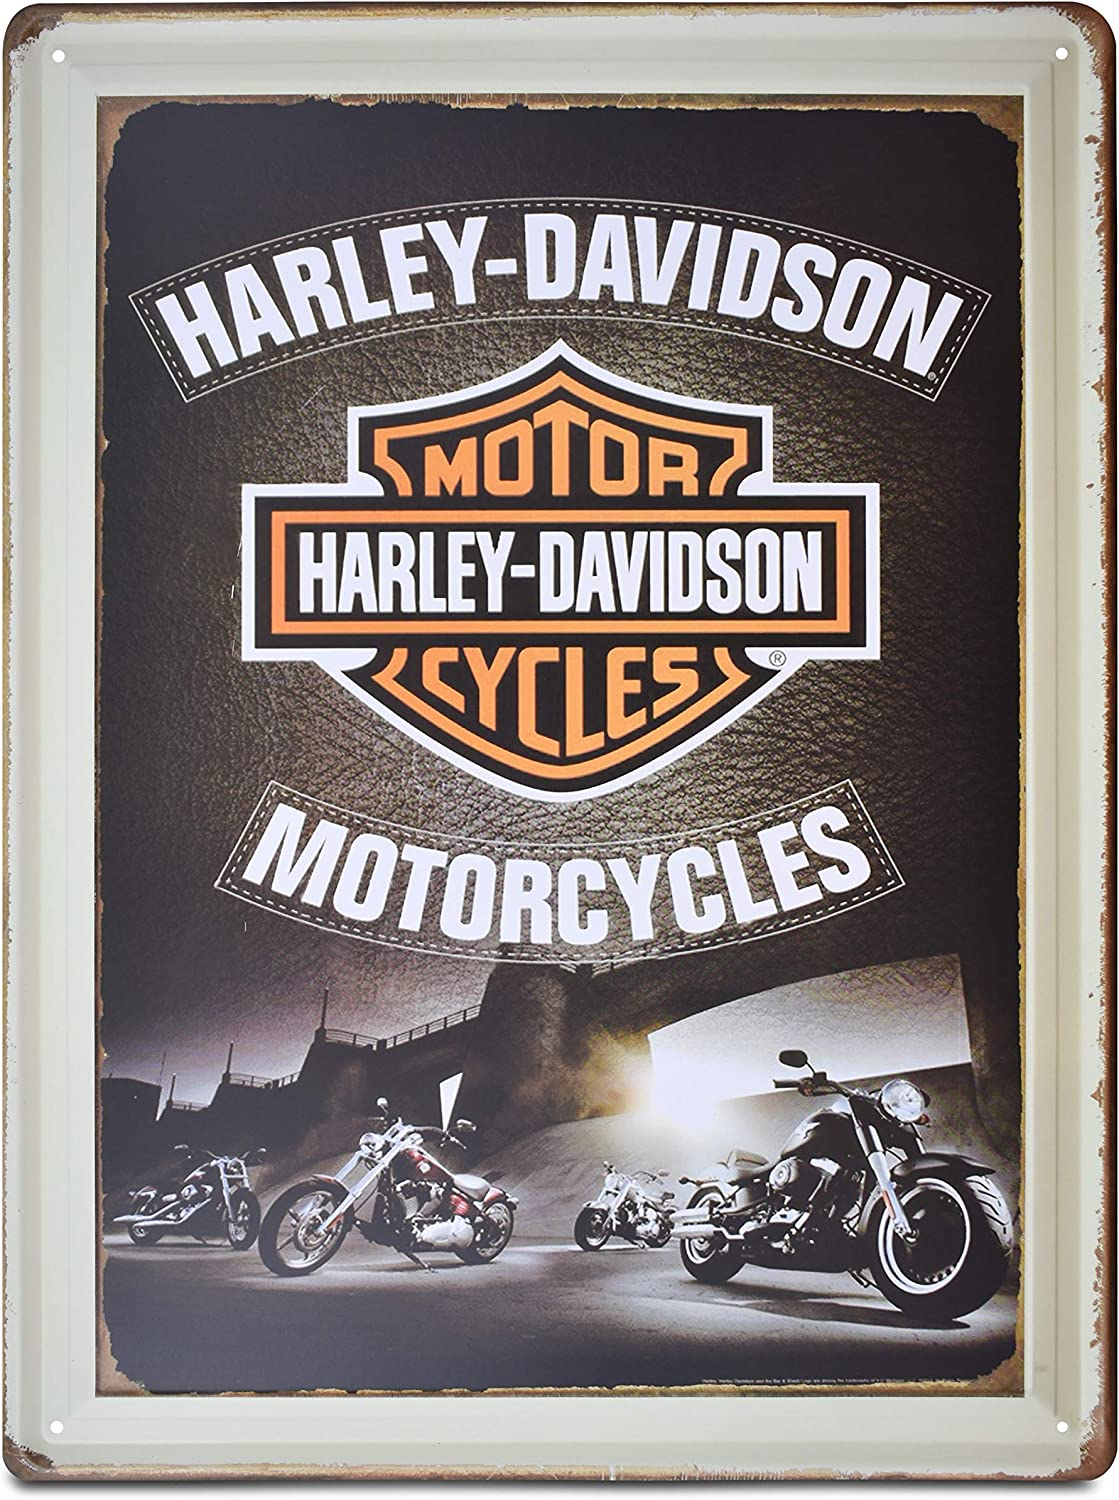 H&K Harley Davidson Heritage Springer Motorcycle Retro Metal Tin Sign Posters Wall Decor 12X8-Inch